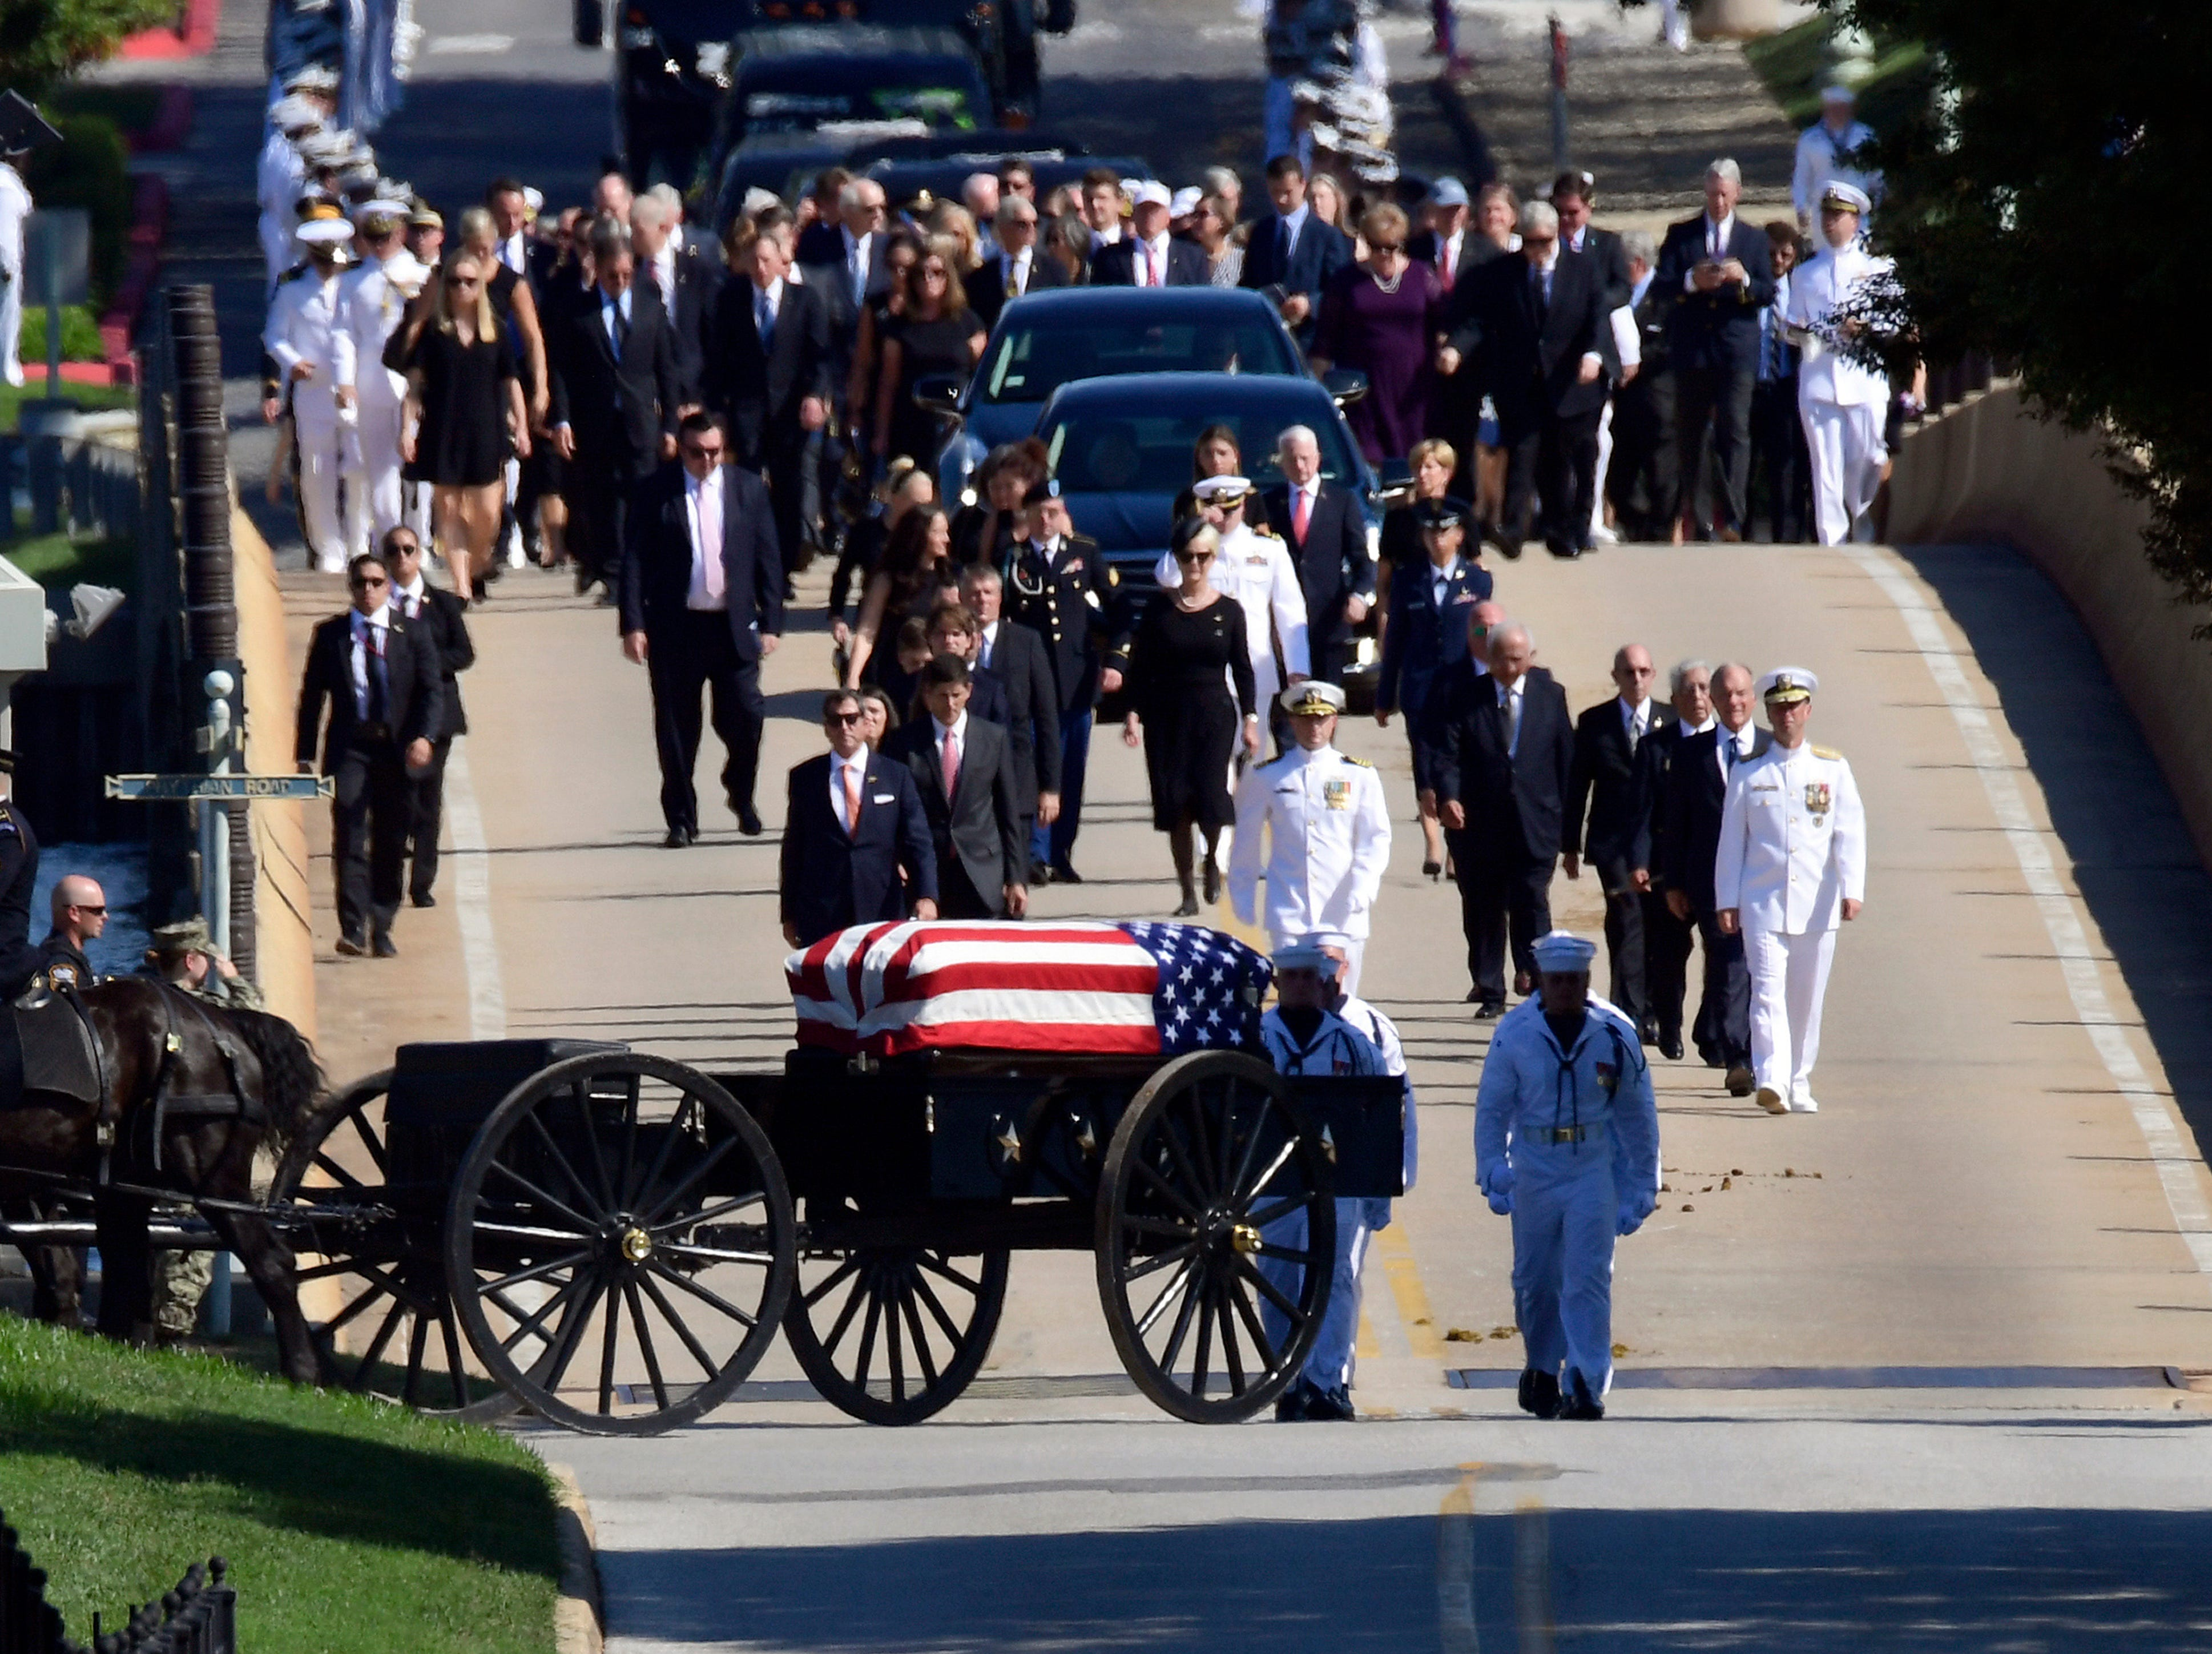 Family members, including Cindy McCain, back center, follow a horse-drawn caisson that carries the casket of Sen. John McCain as it proceeds to the United States Naval Academy cemetery in Annapolis, Md., Sunday, Sept. 2, 2018, for burial. McCain died Aug. 25 from brain cancer at age 81.